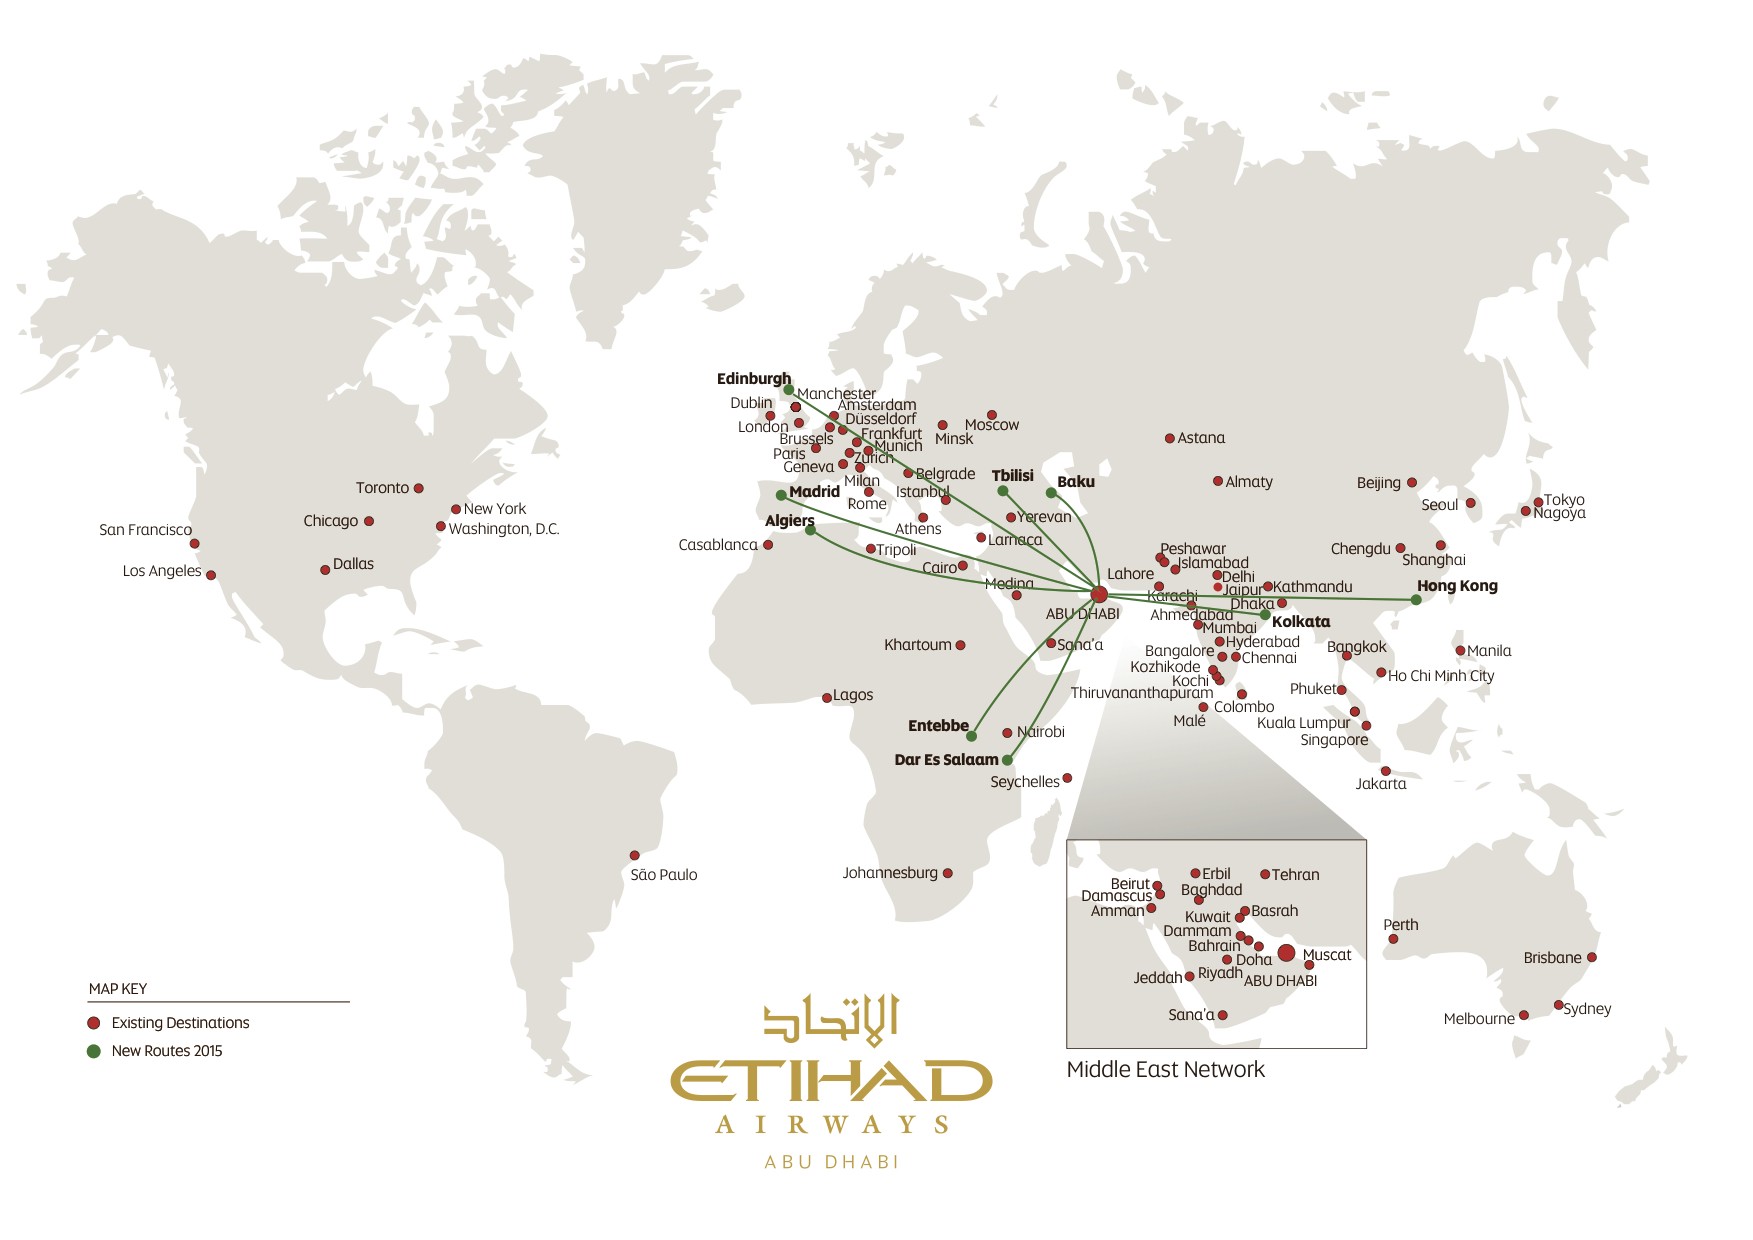 Qatar Airways Route Map 2015